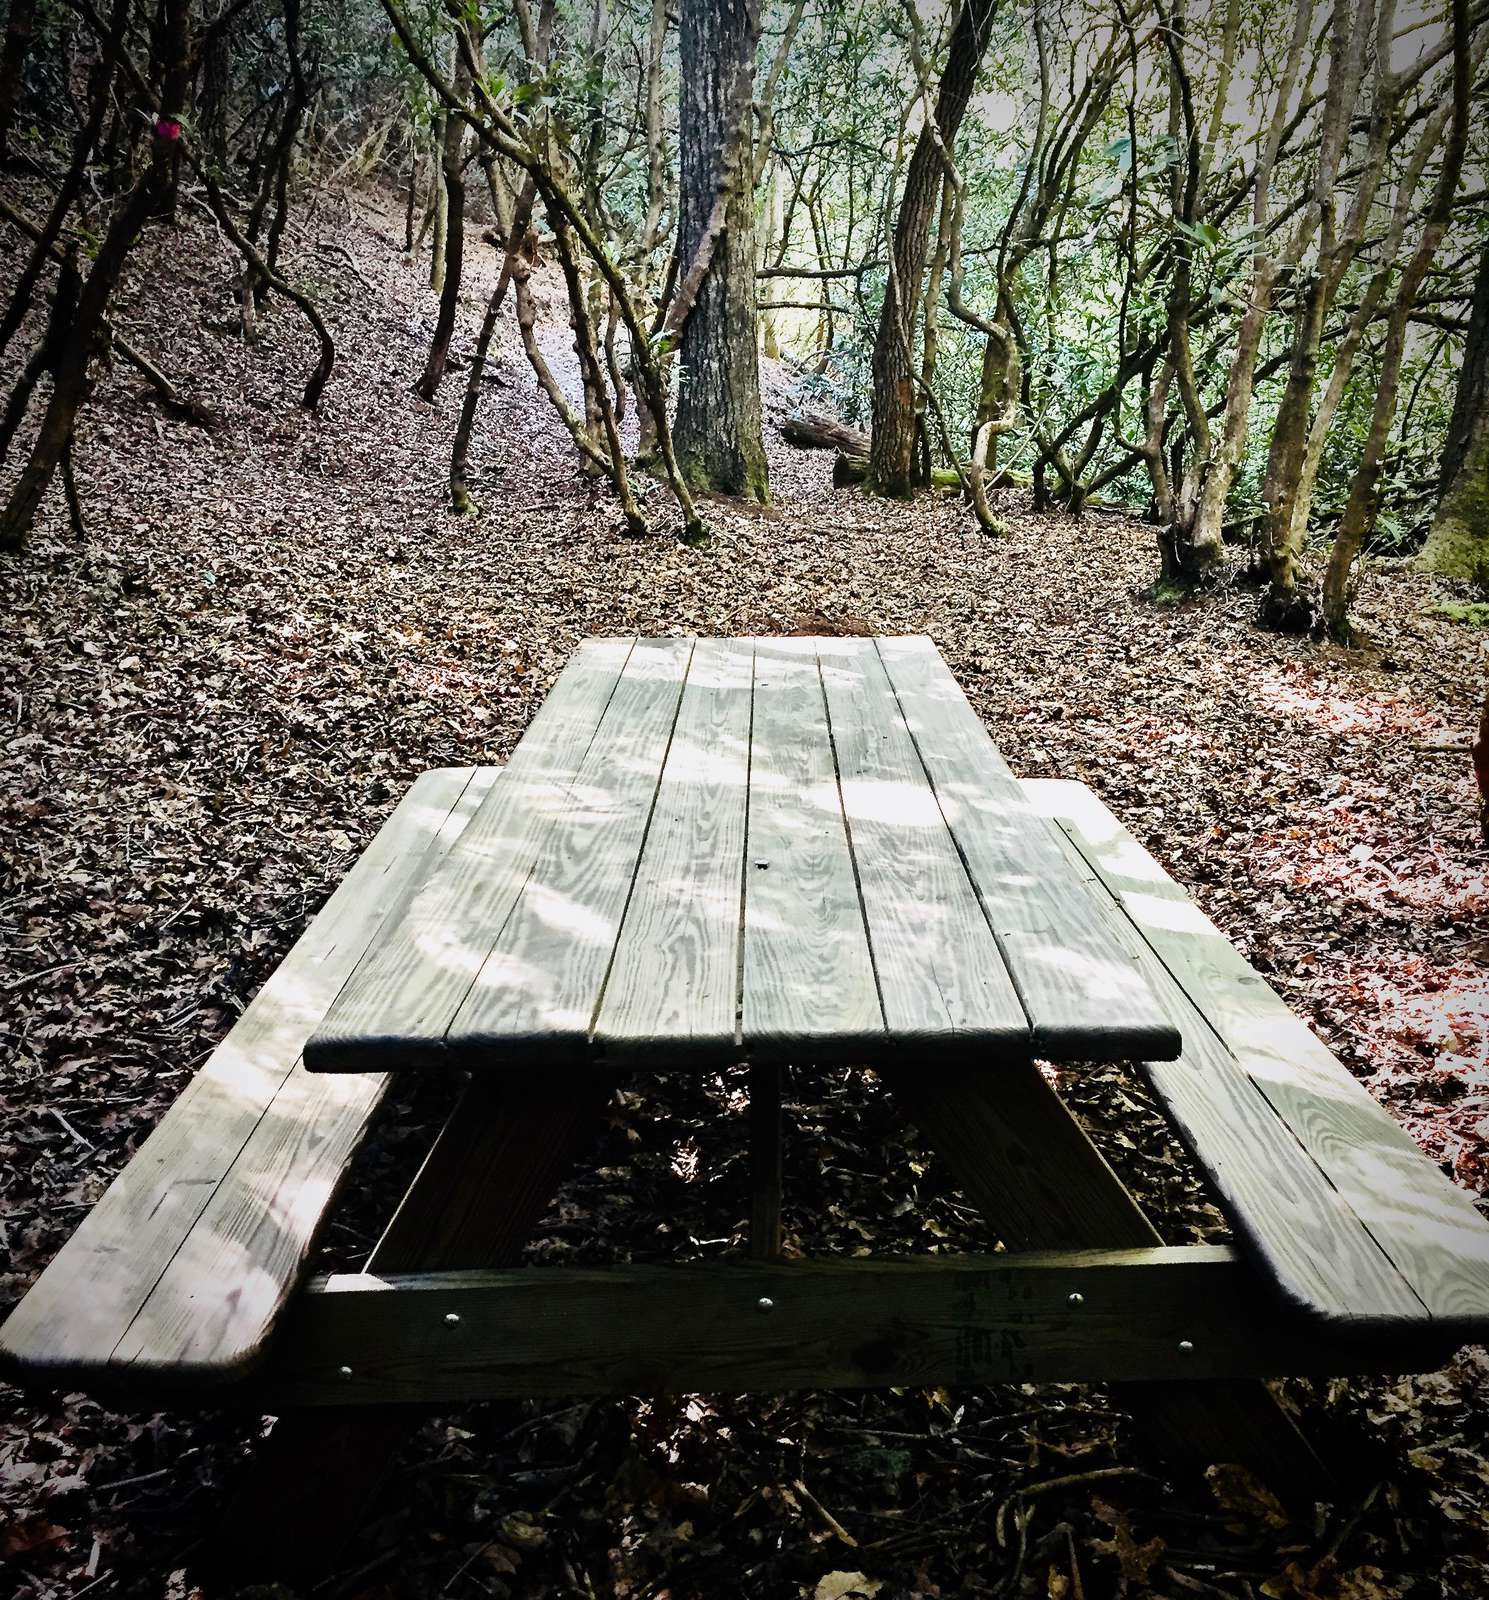 PicNic Table at the base of your Private nature Trail offers the ideal place to relax and enjoy the sounds of the stream.